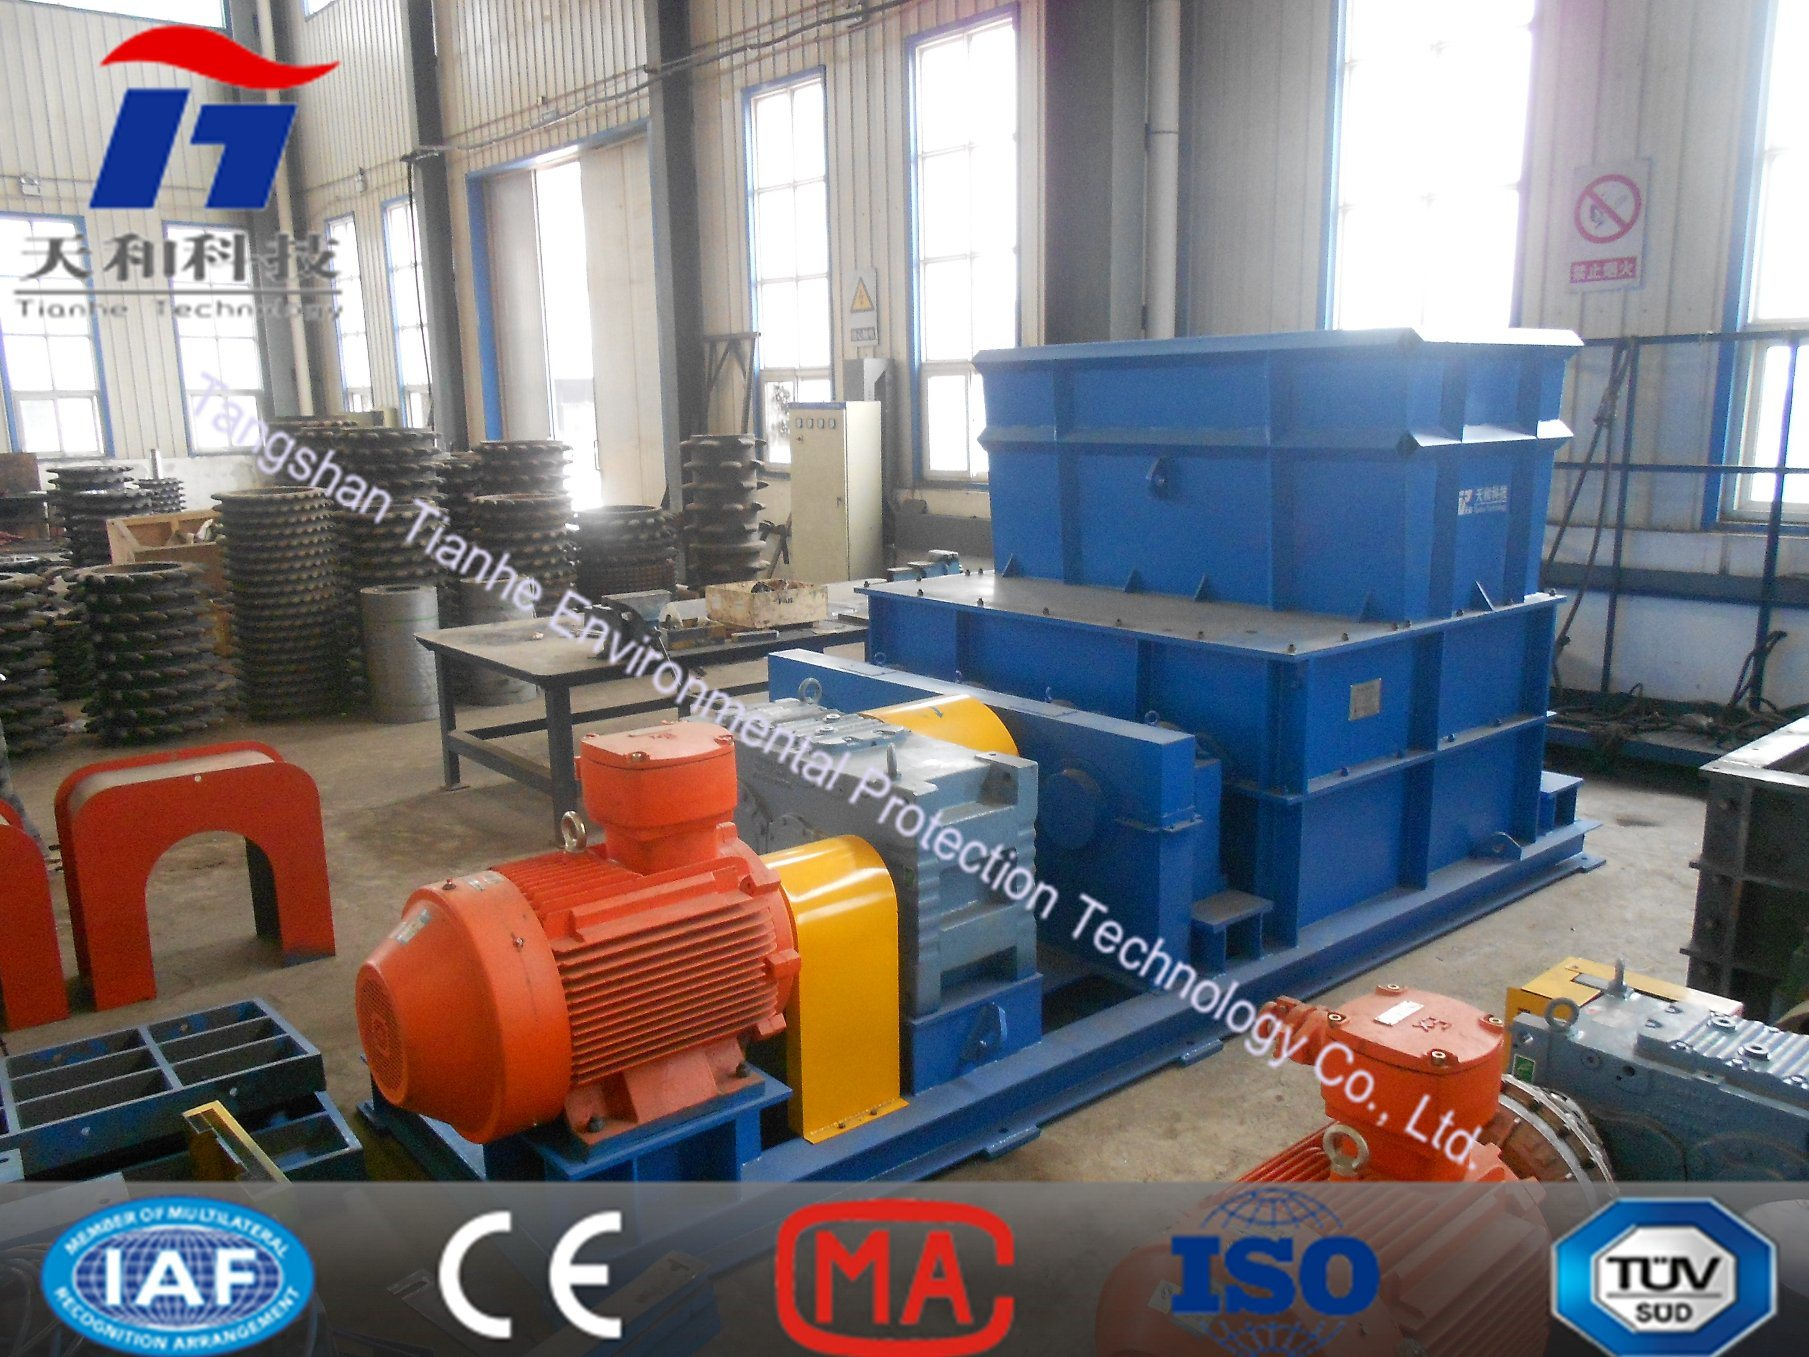 Double Toothed Roll Crusher/Hammer Crusher/Impact and Slime Crushing Machine